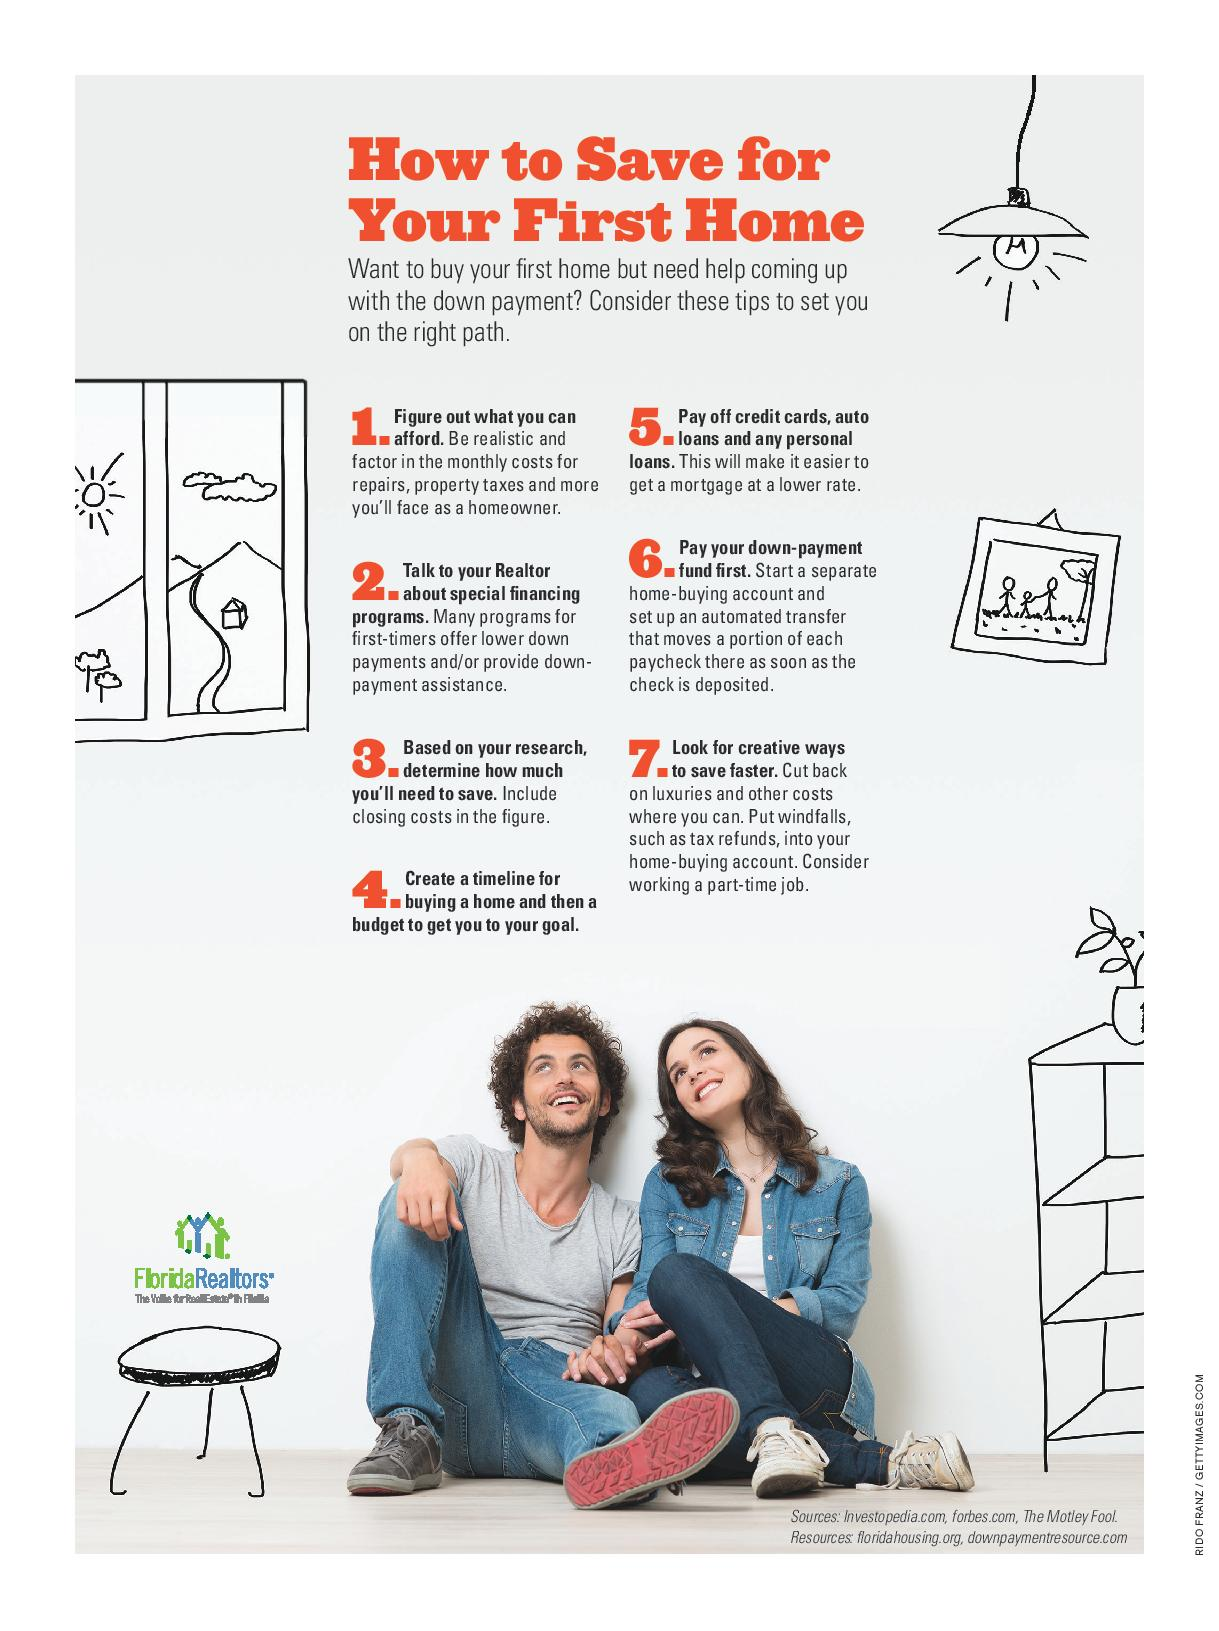 Want to buy your first home but need help coming up with the down payment? Consider these tips to set you on the right path.